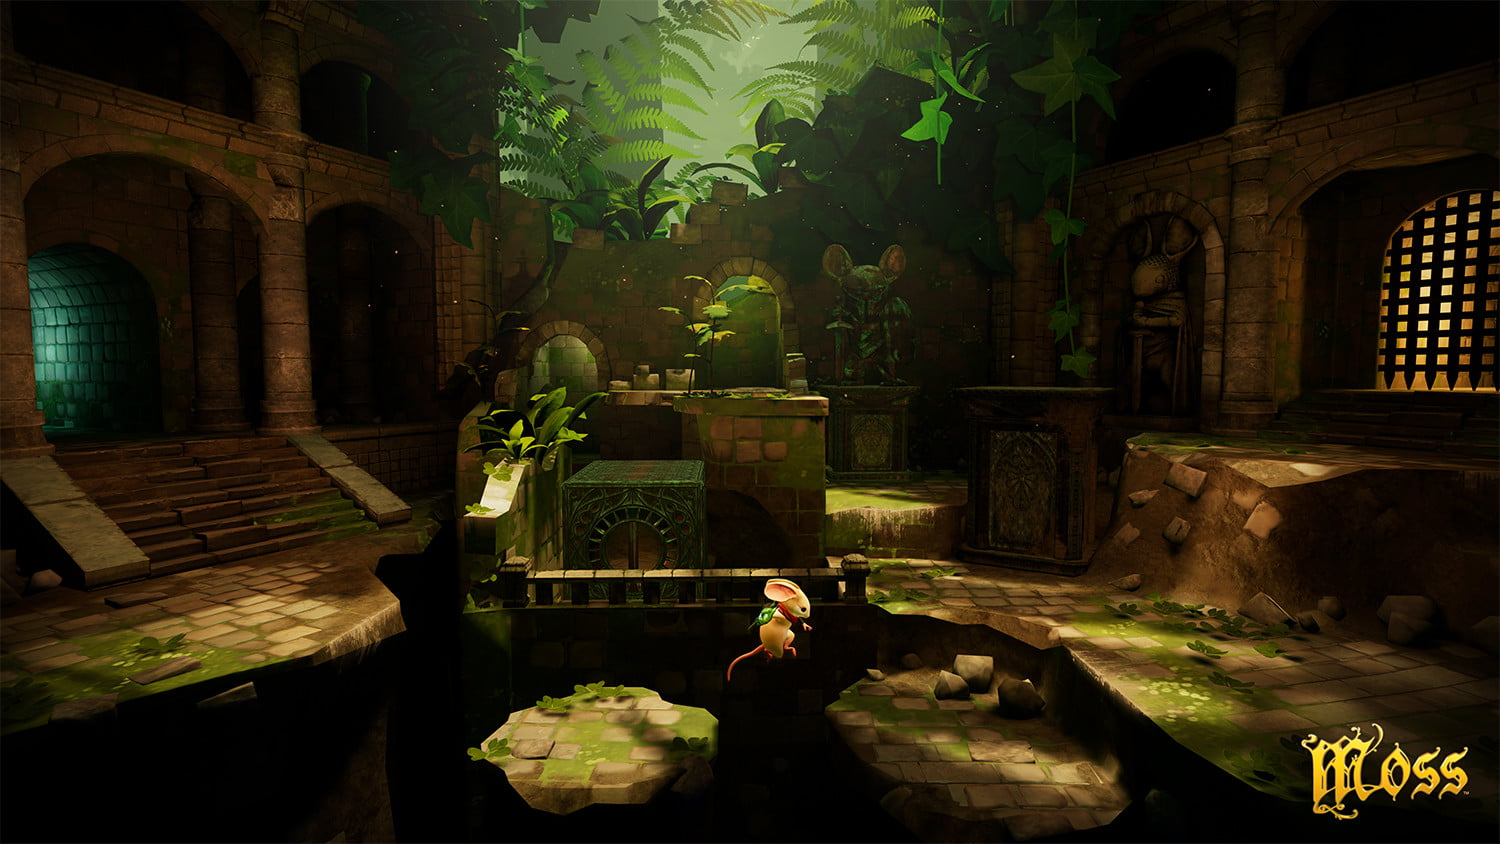 moss-vr-game-review-4-1500x844.jpg